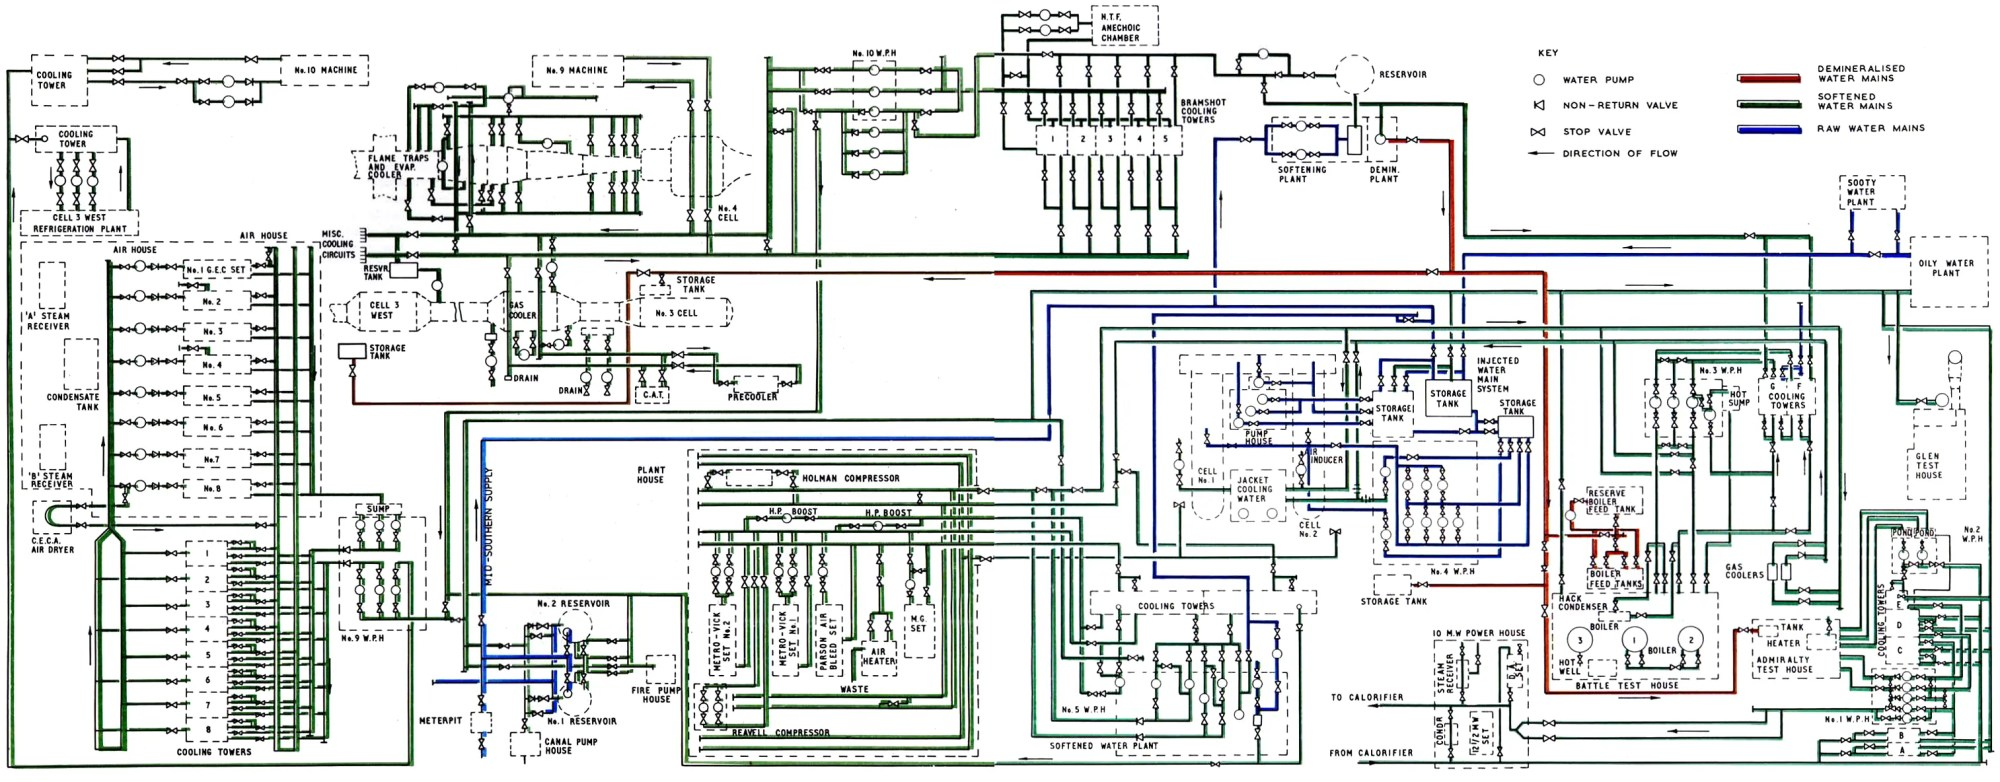 hight resolution of 5 8 layout of n g t e new site water supply circuits